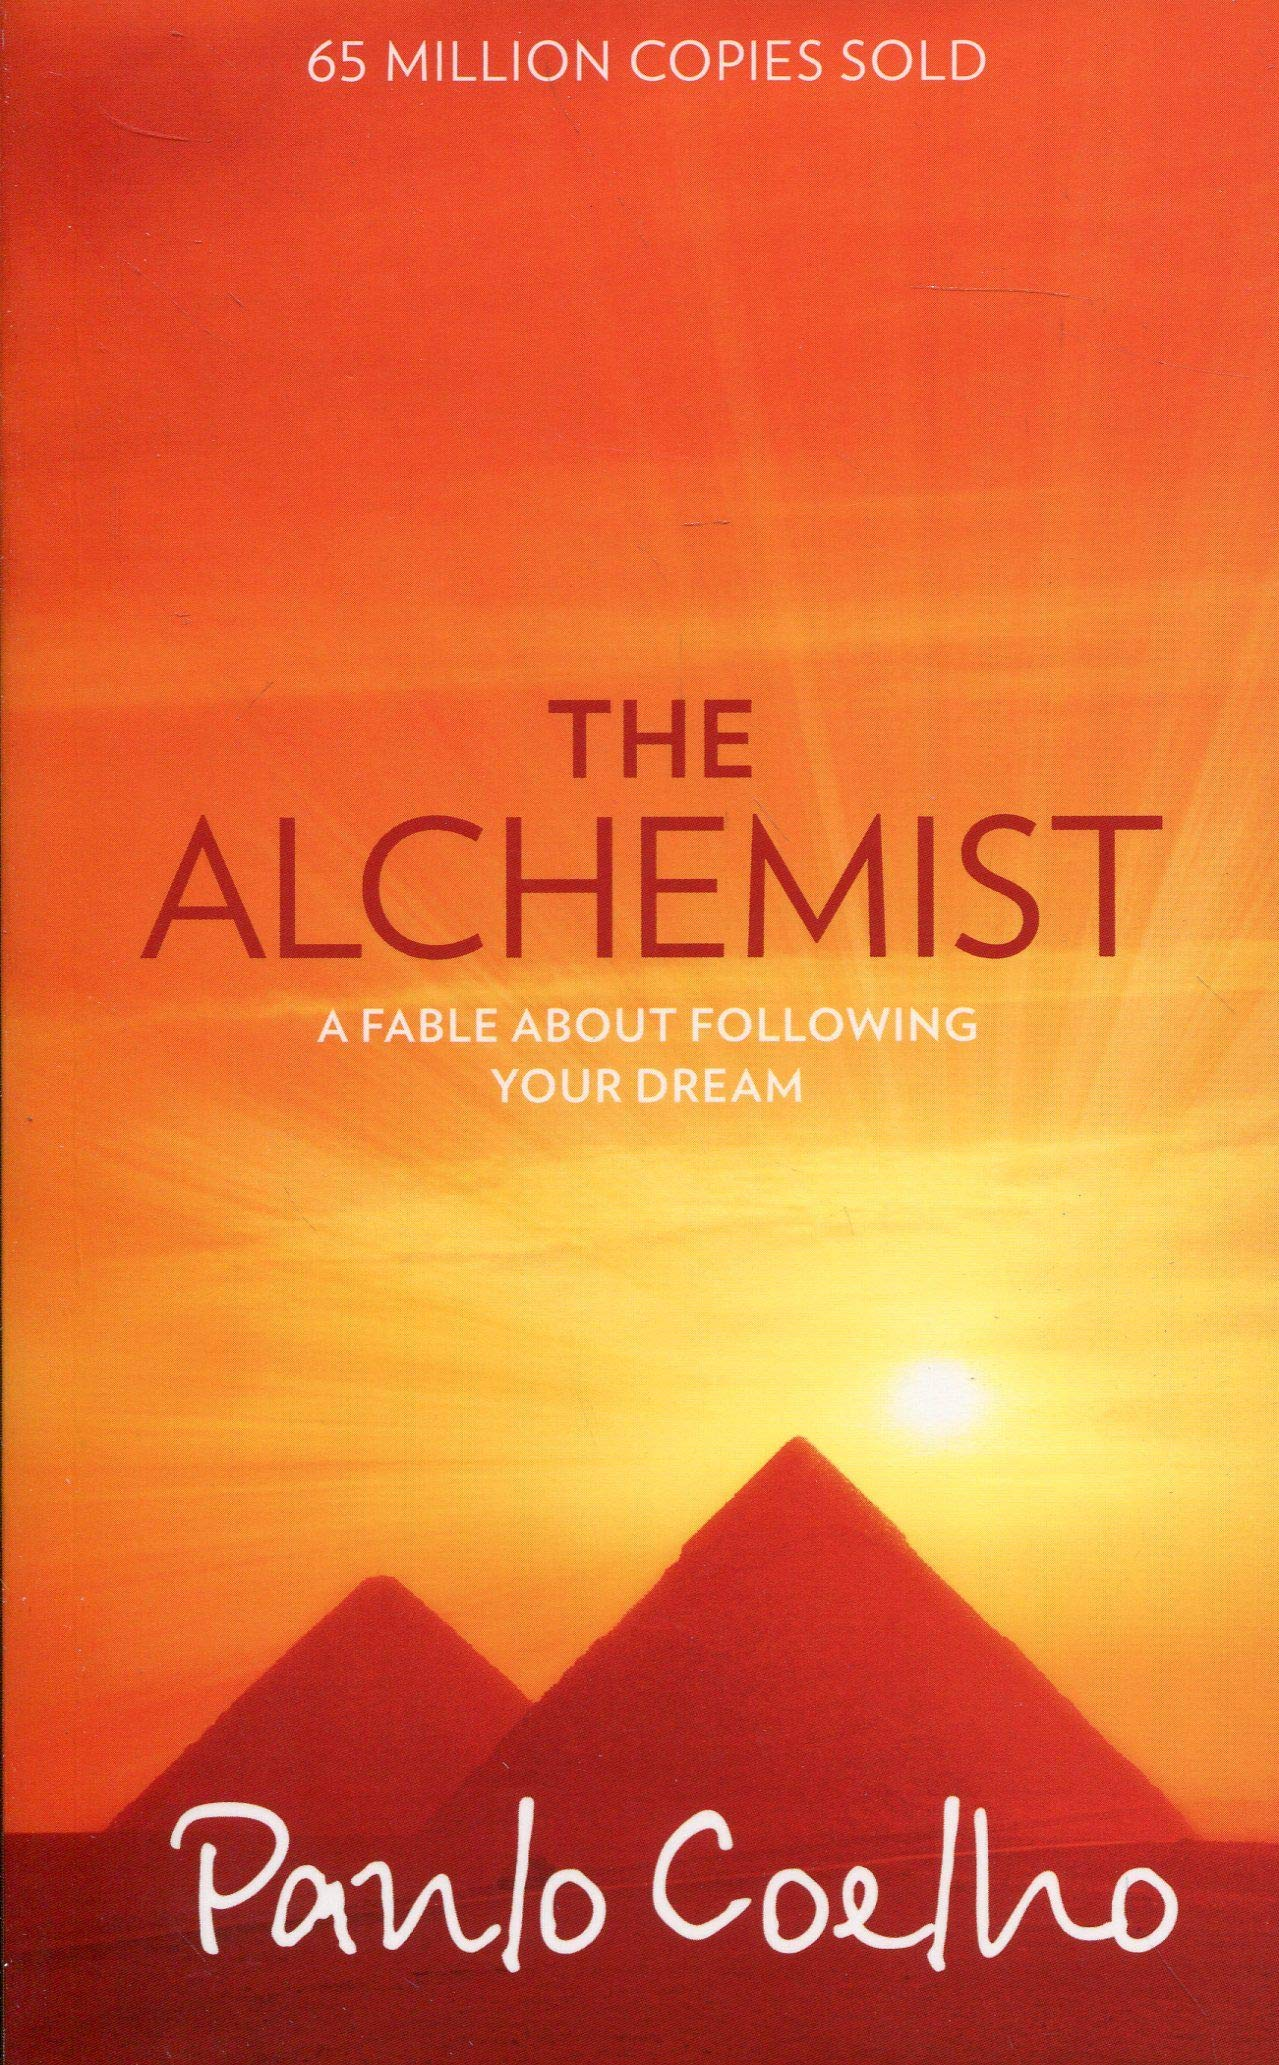 the alchemist book pic